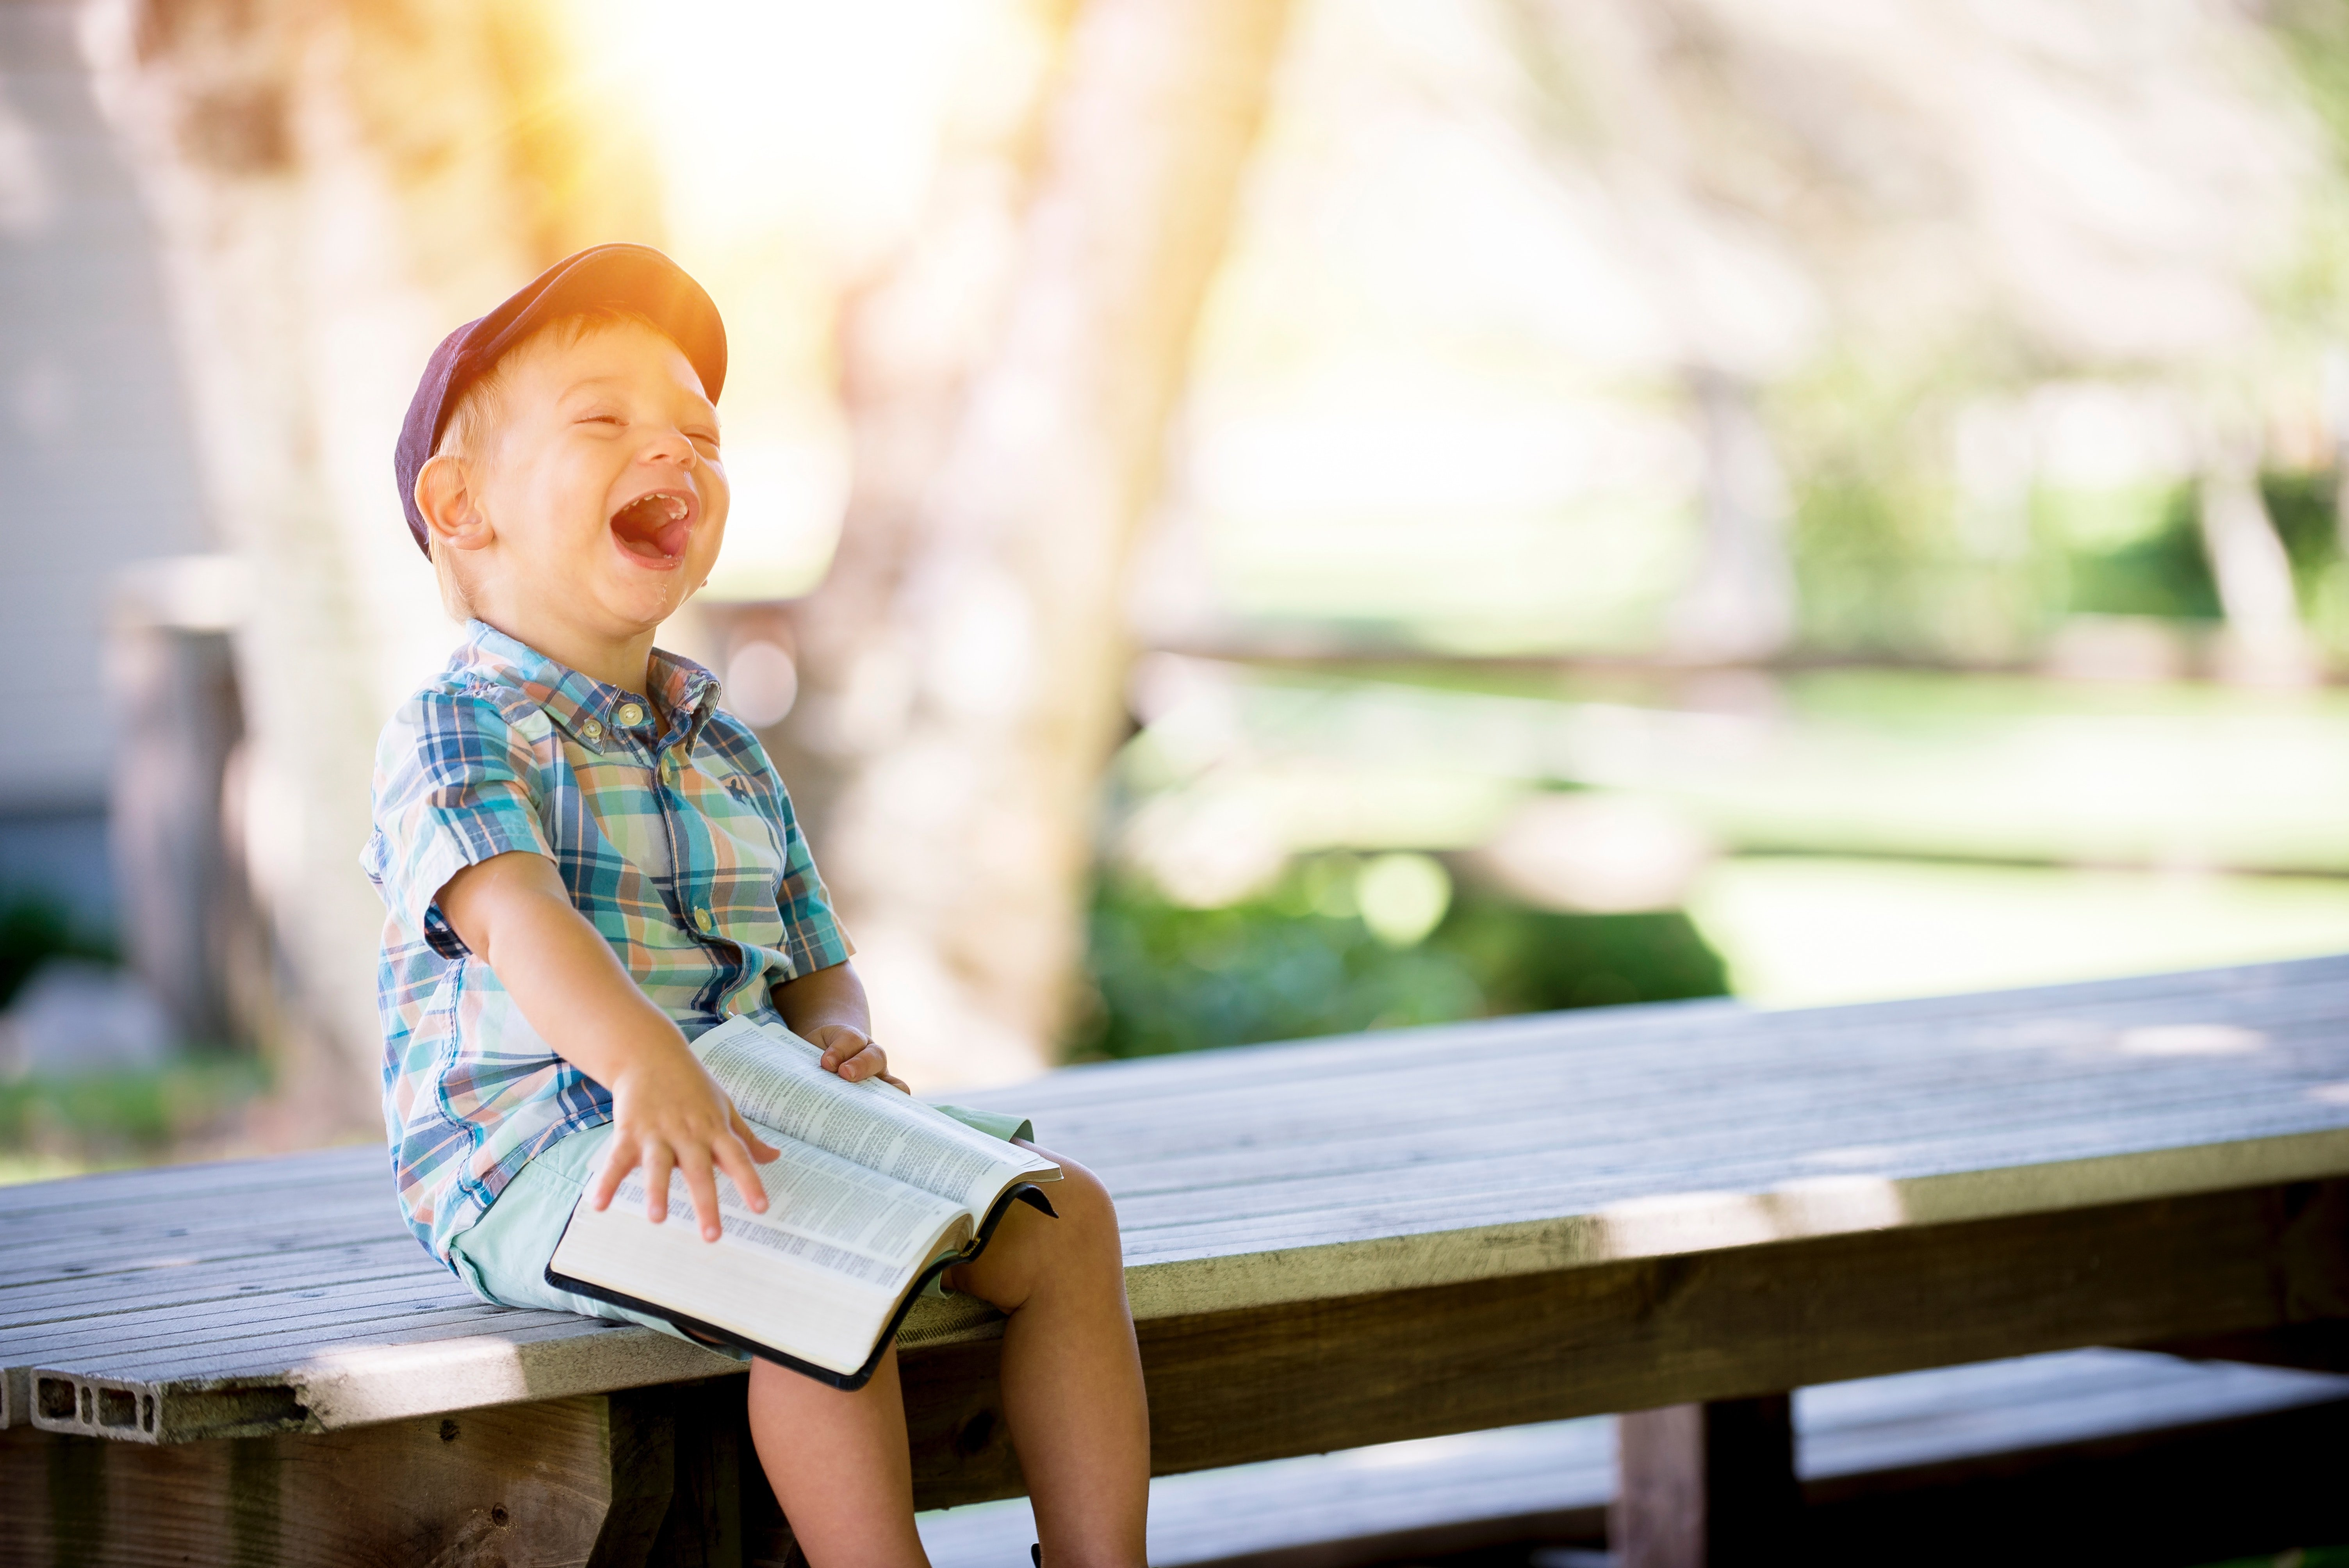 A child laughing | Source: Unsplash.com